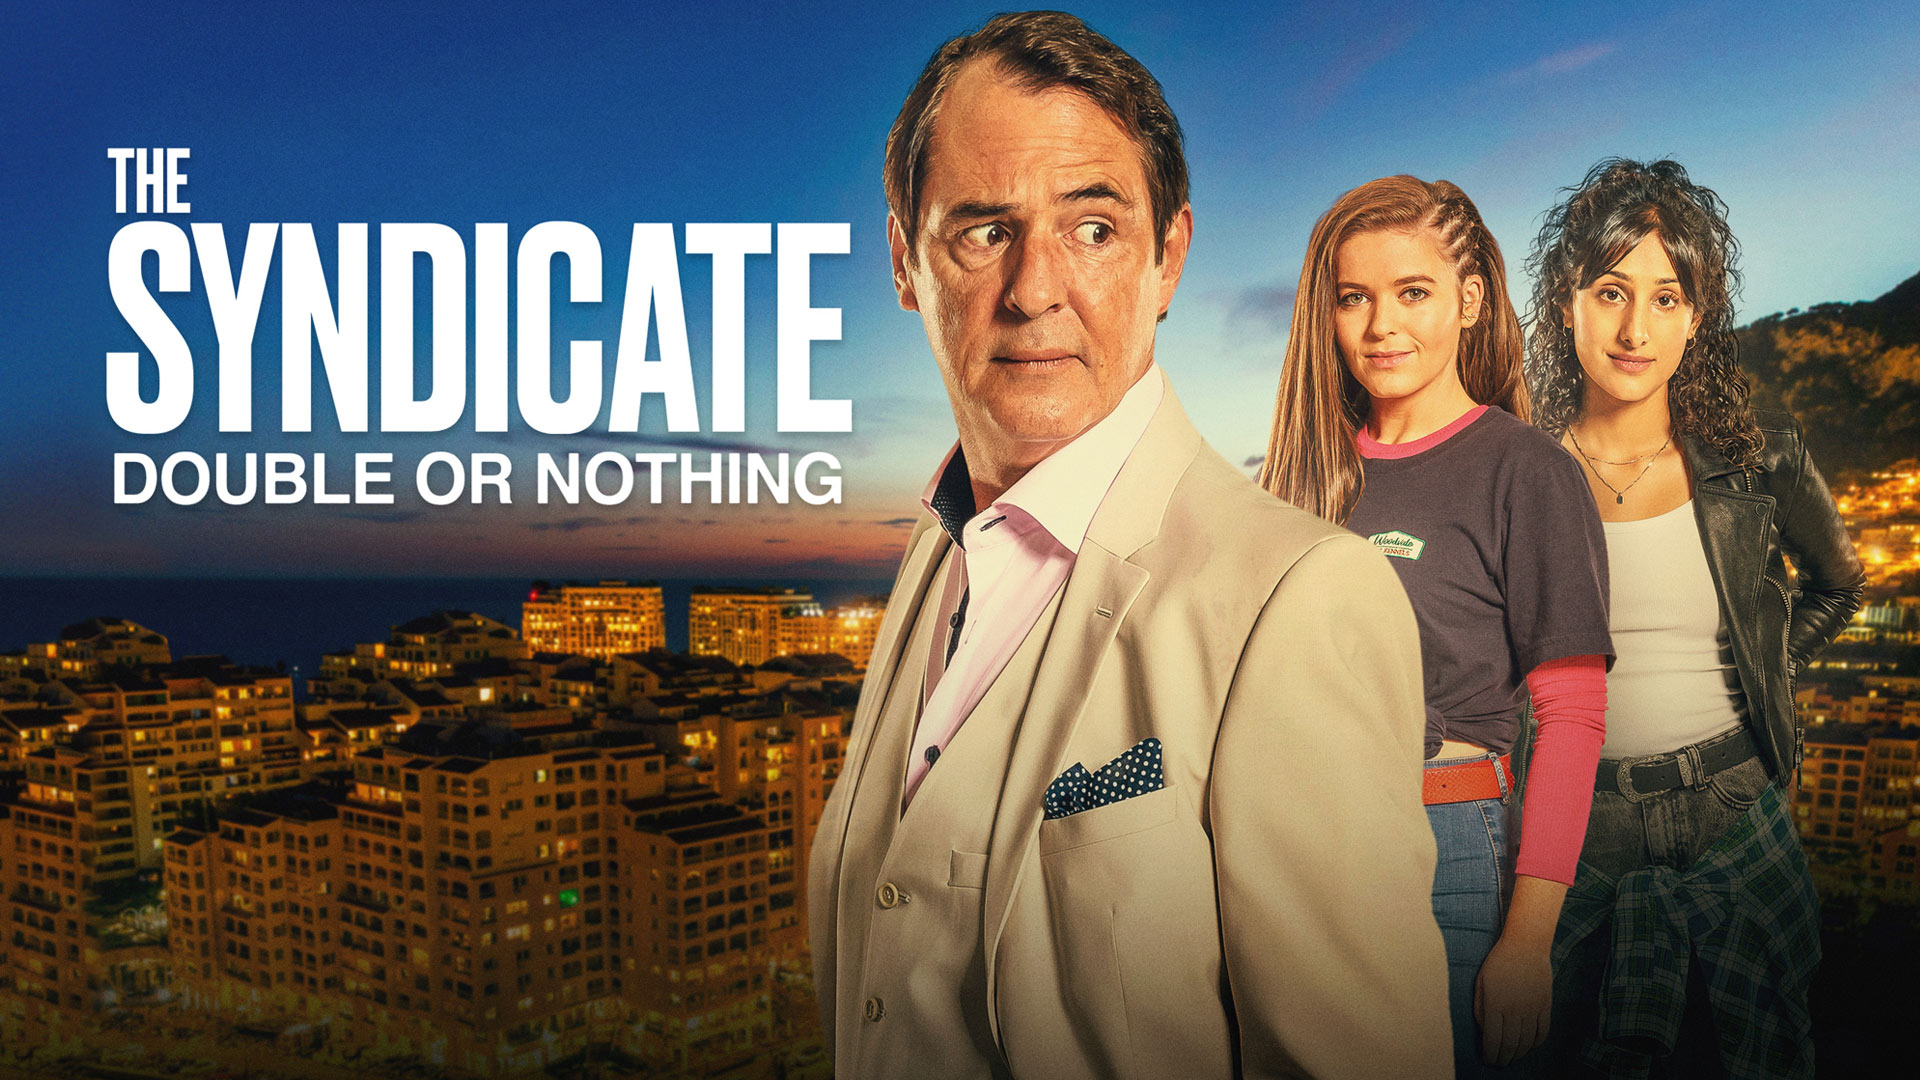 The Syndicate: Double or Nothing